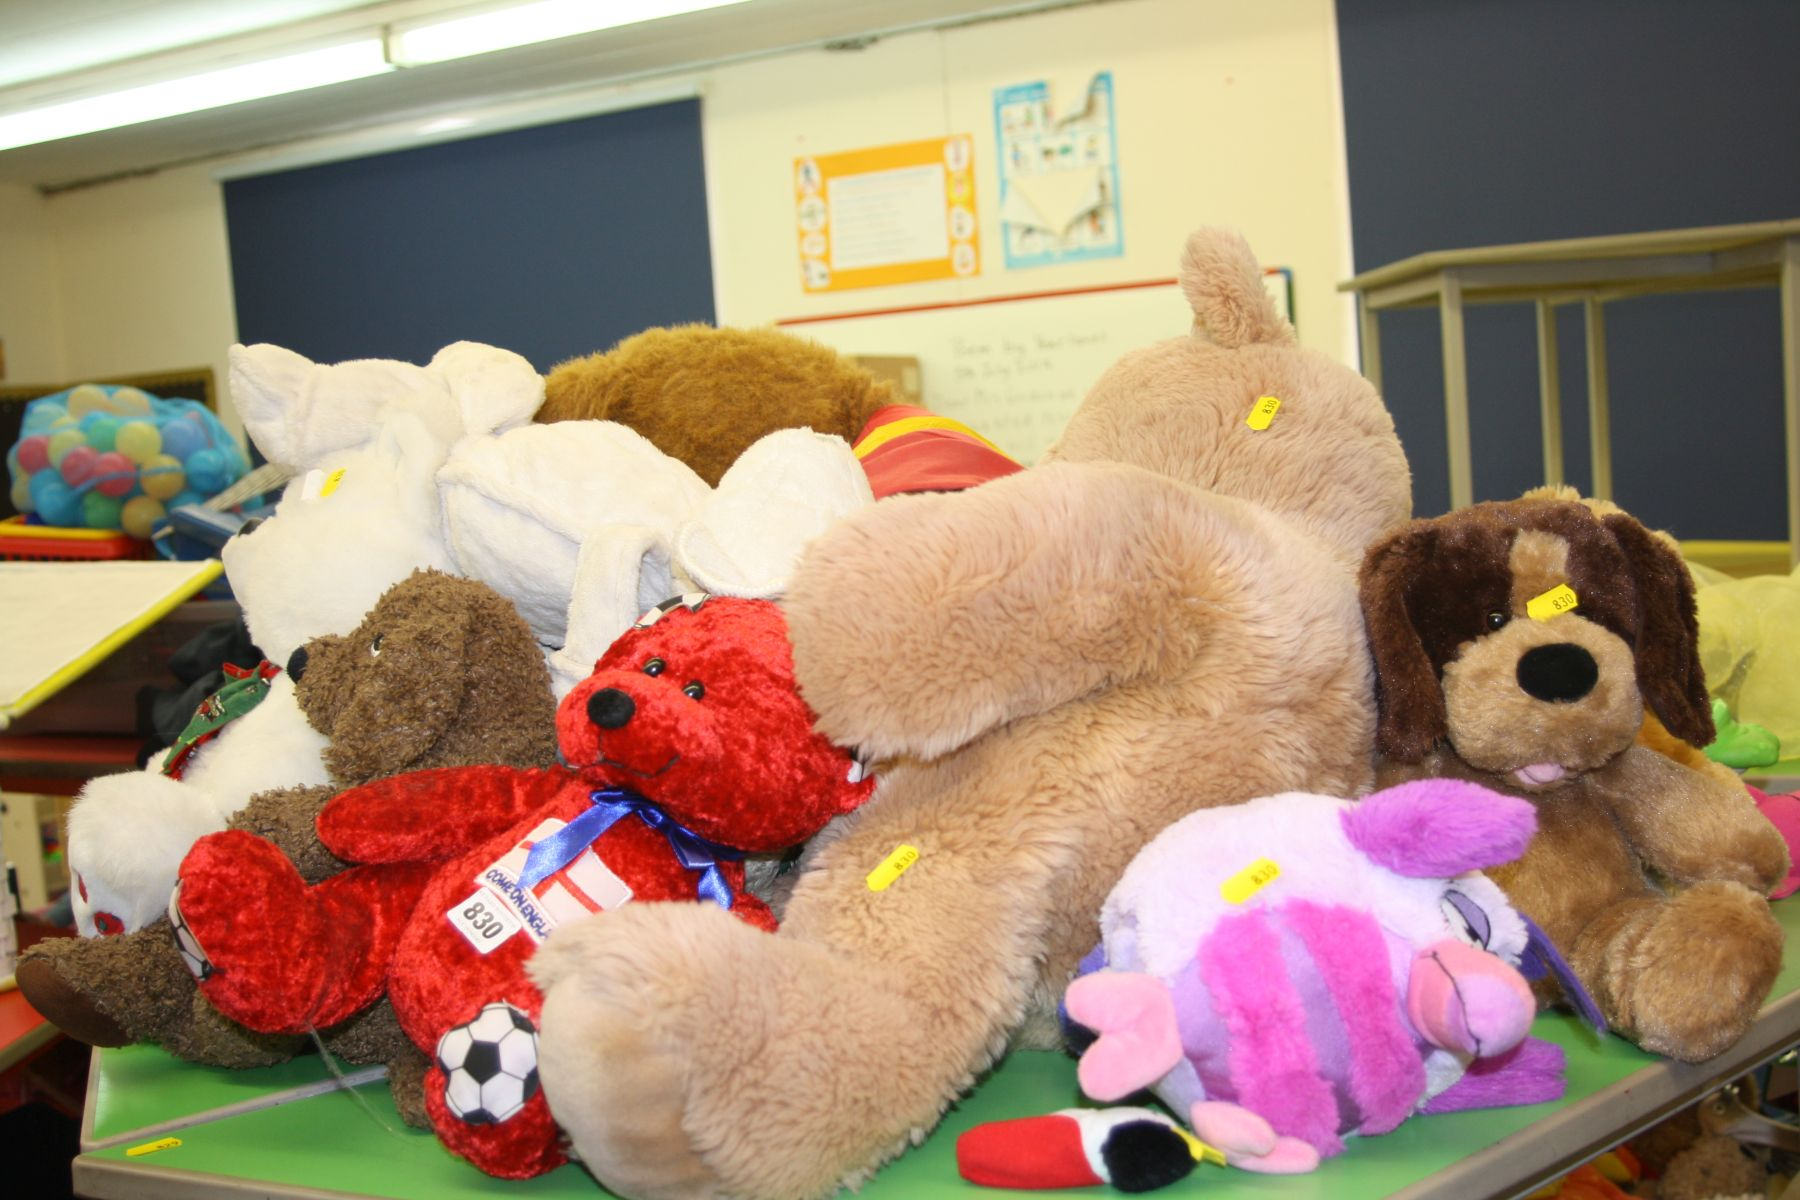 Lot 830 - A QUANTITY OF TEDDY BEARS AND TOYS, including large Polydron, shop and kitchen toys, etc